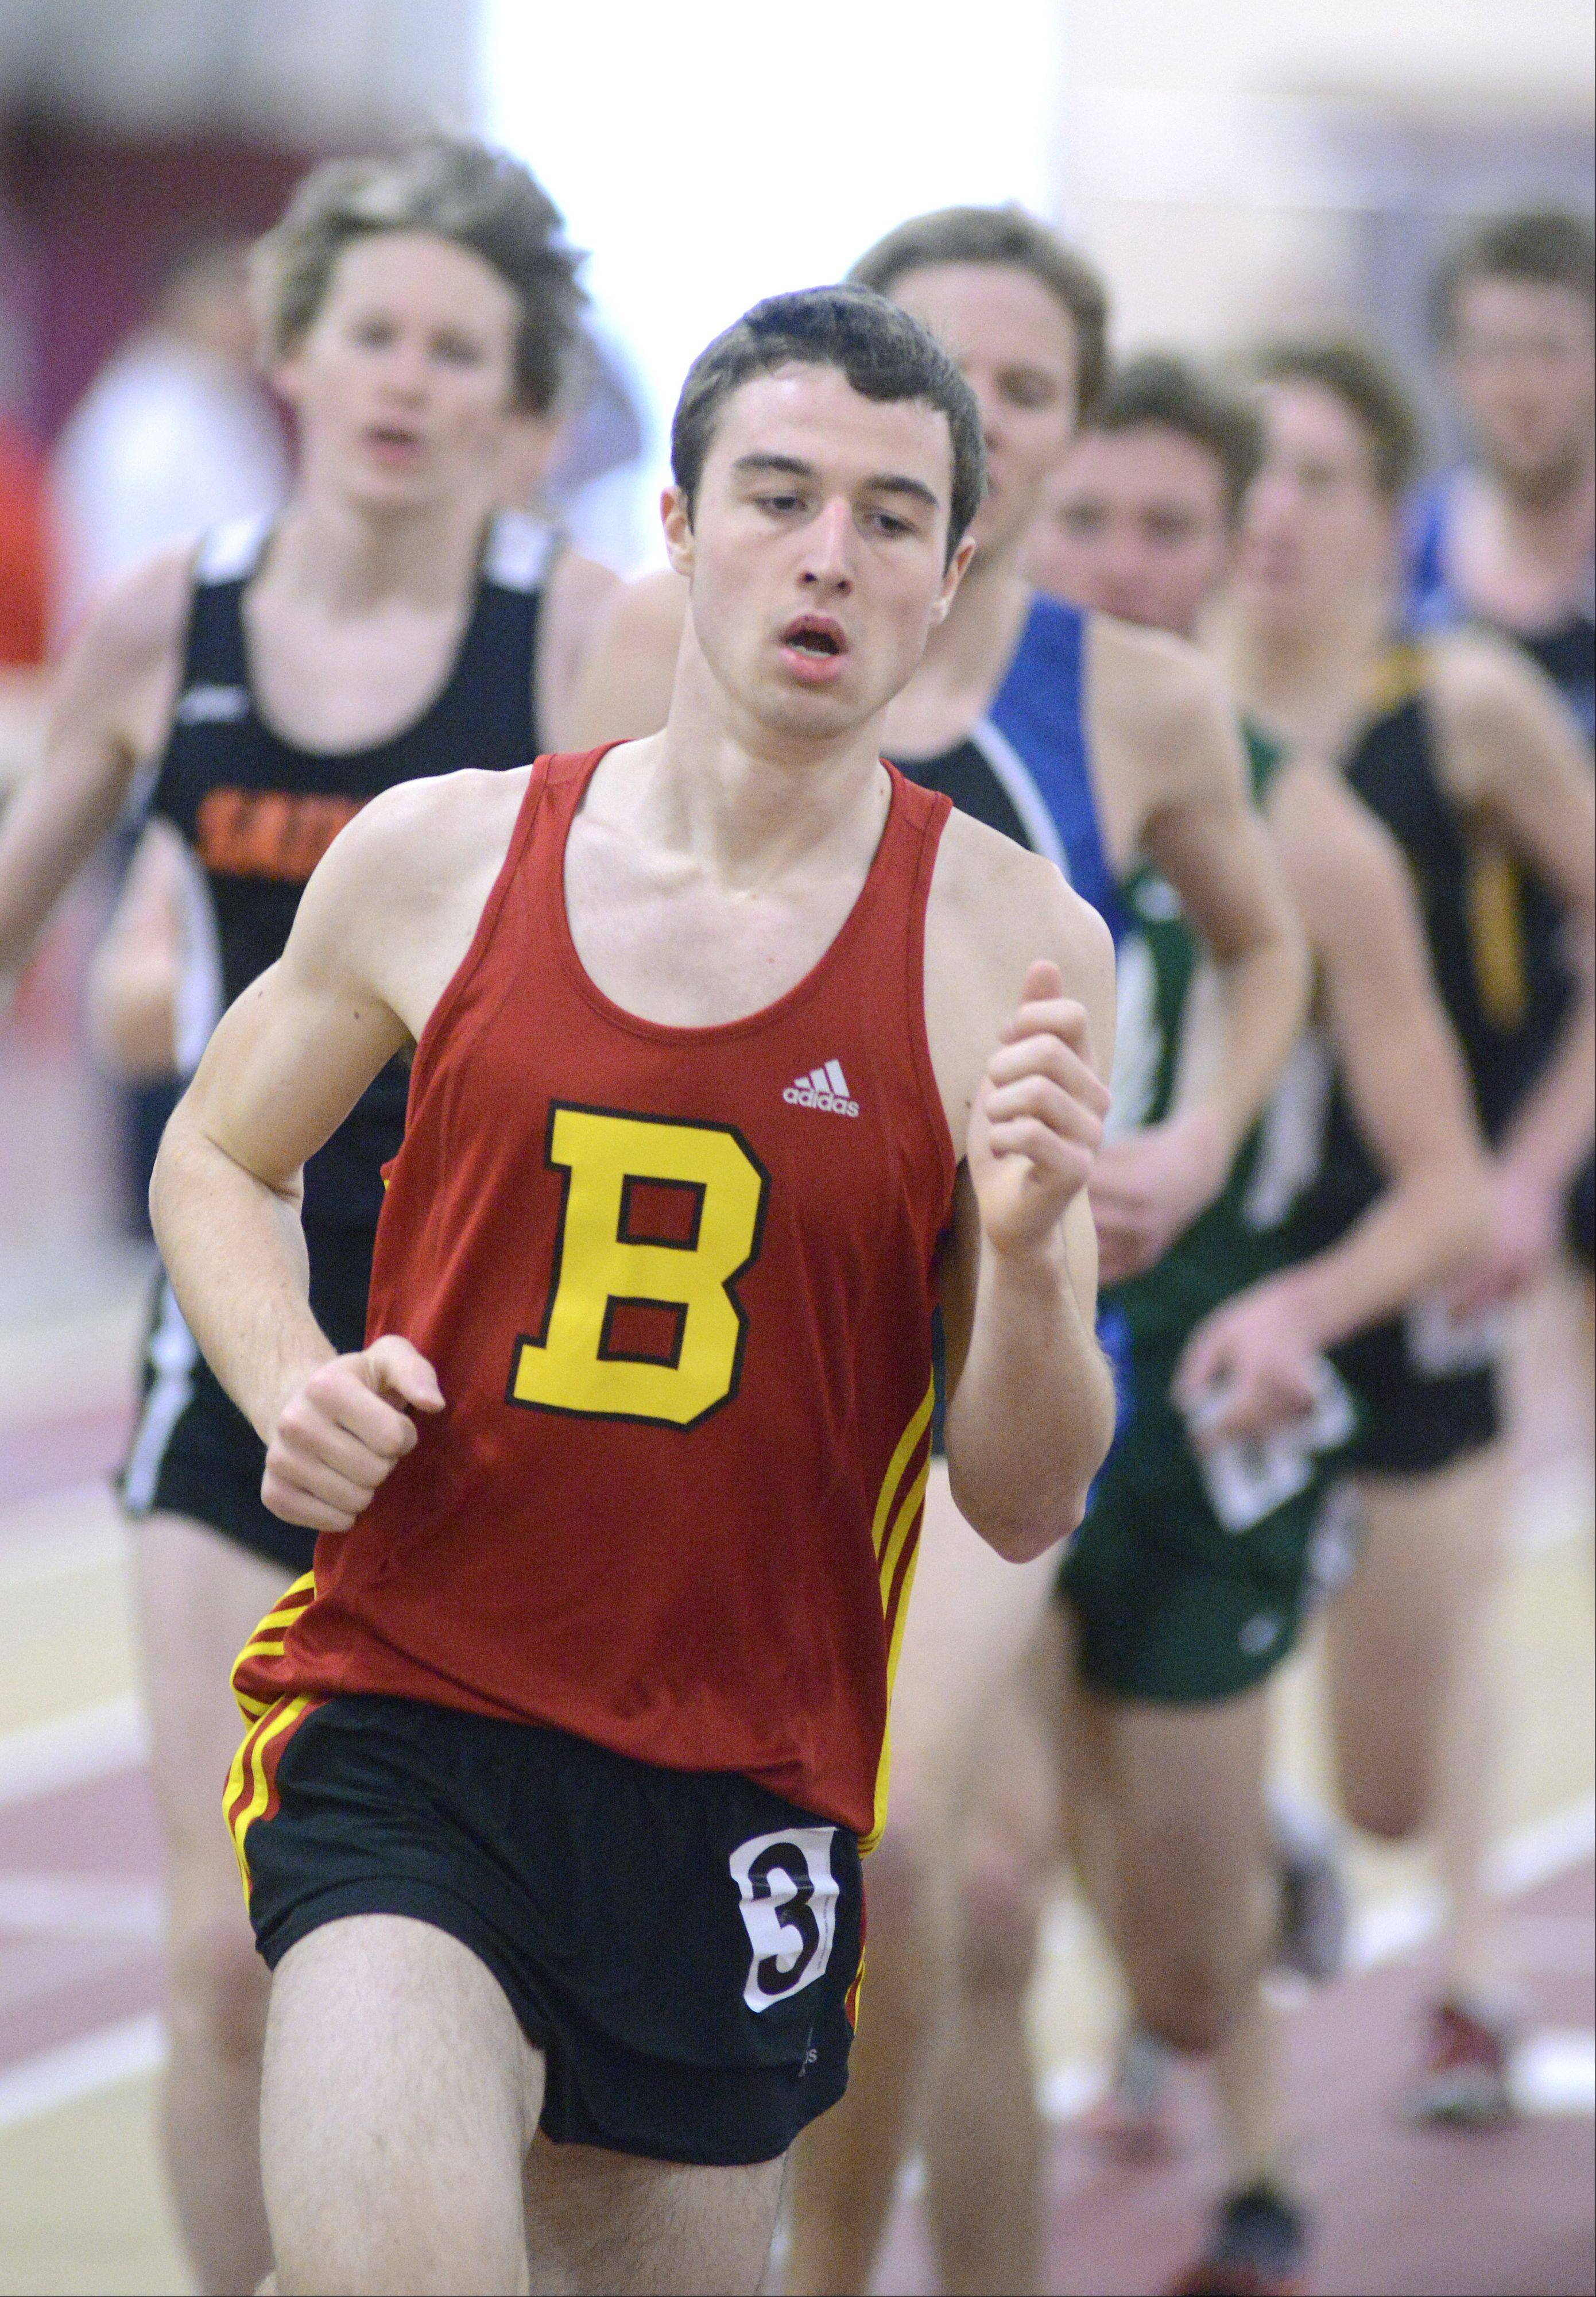 Batavia's Mitch Zabka in the 3200 meter run at the Upstate Eight Conference in Batavia on Saturday, March 16.